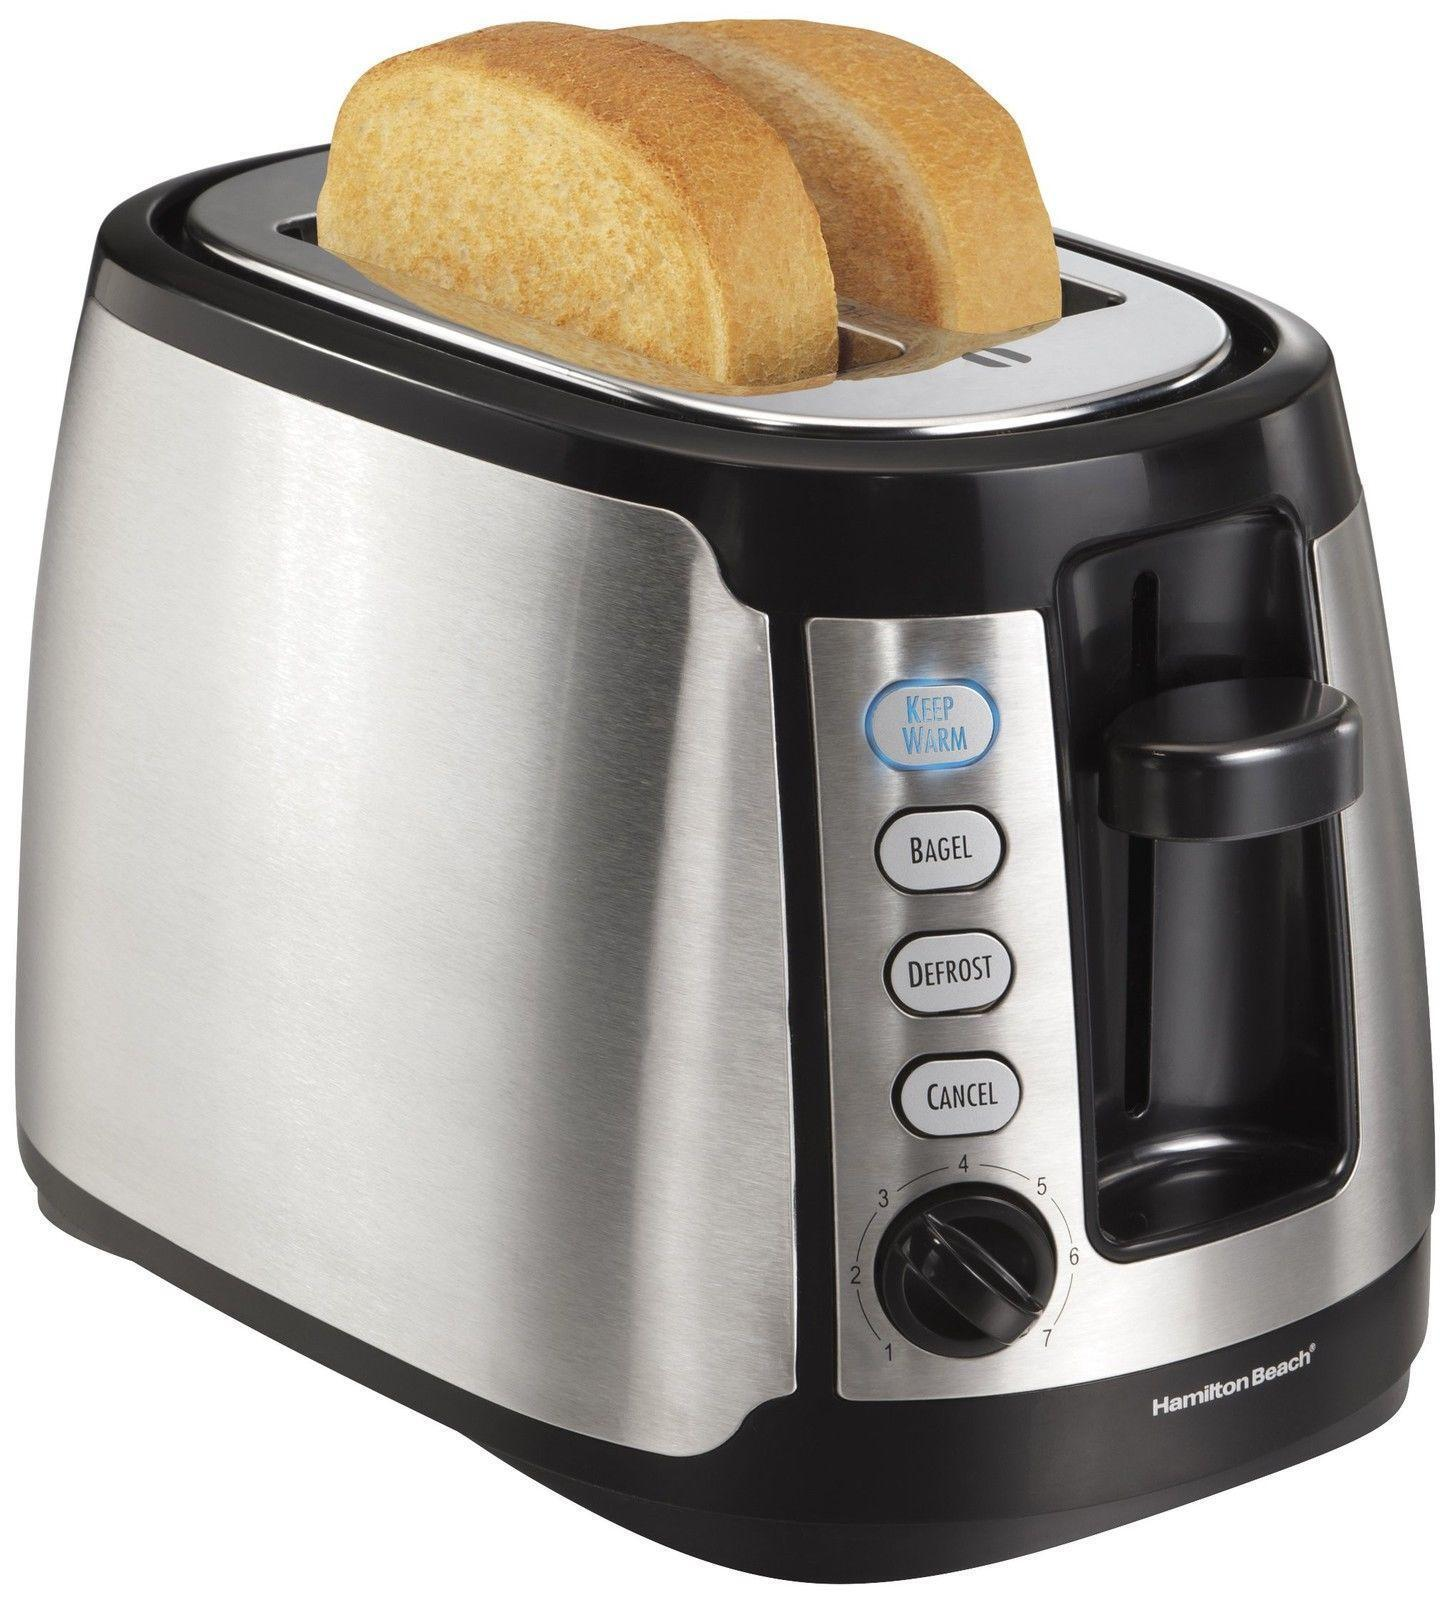 makro online avenia toaster lowest search prices result eaa min industrial slice specials